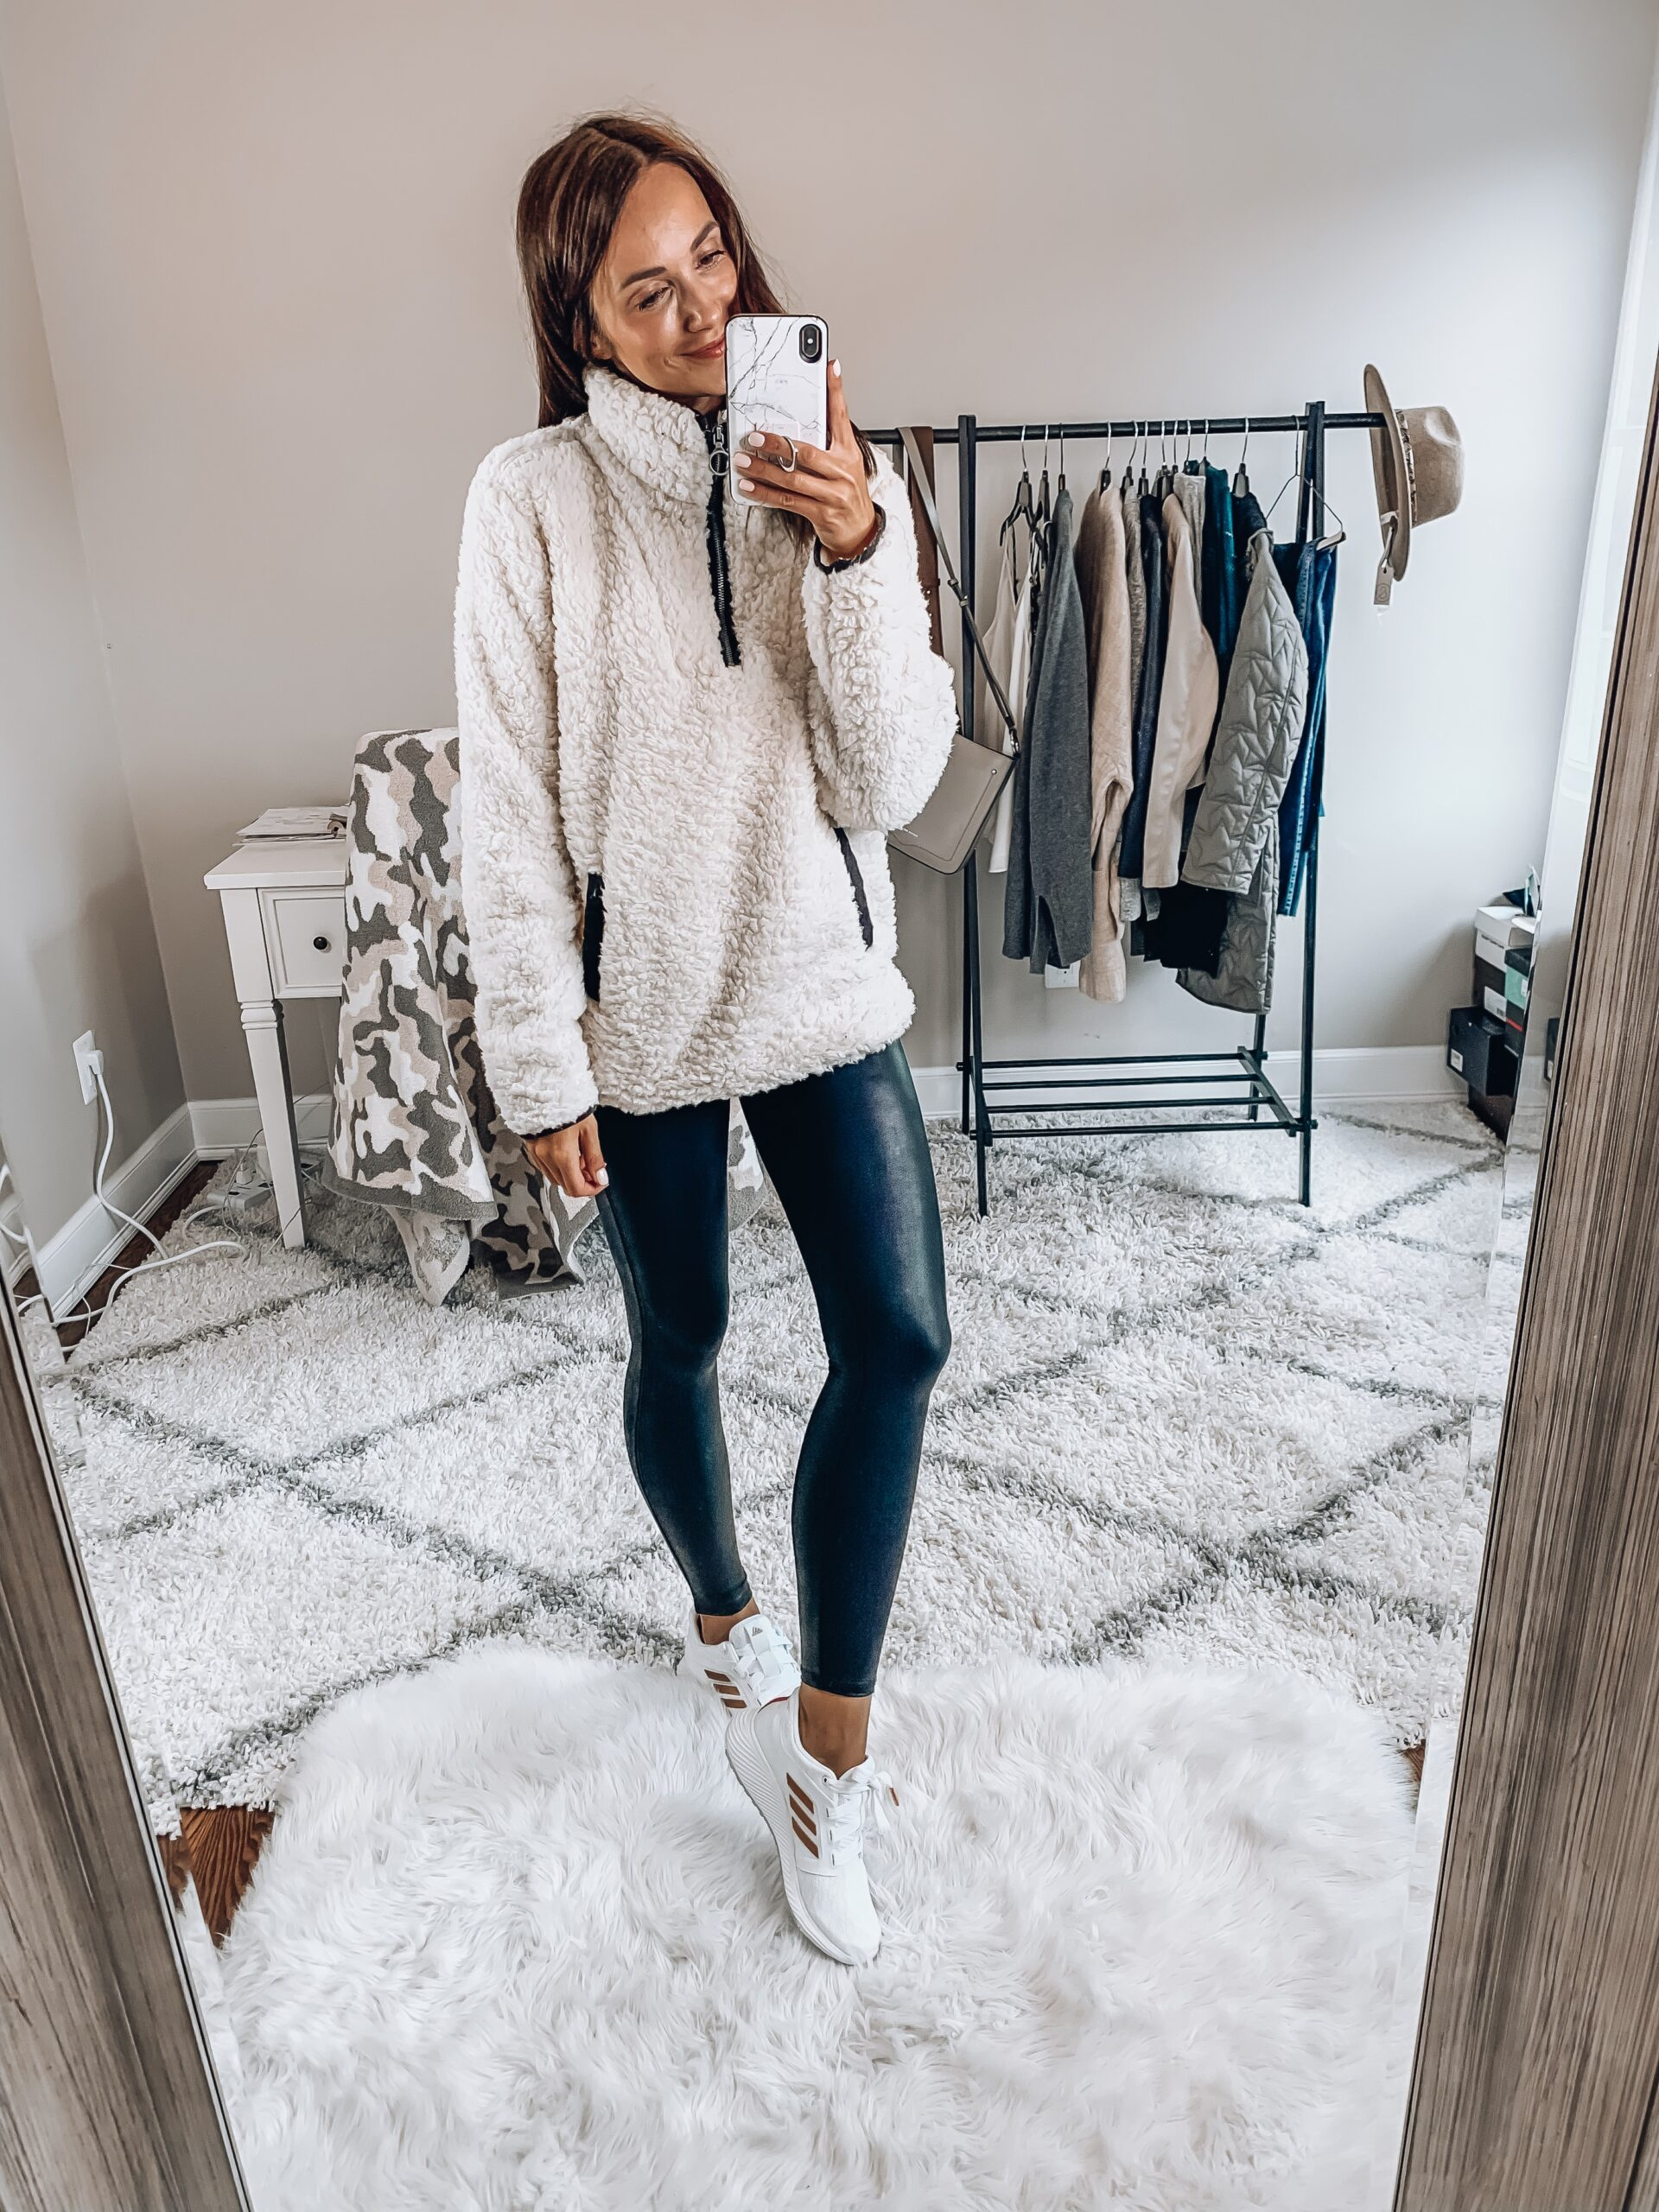 25 Outfit ideas with leggings